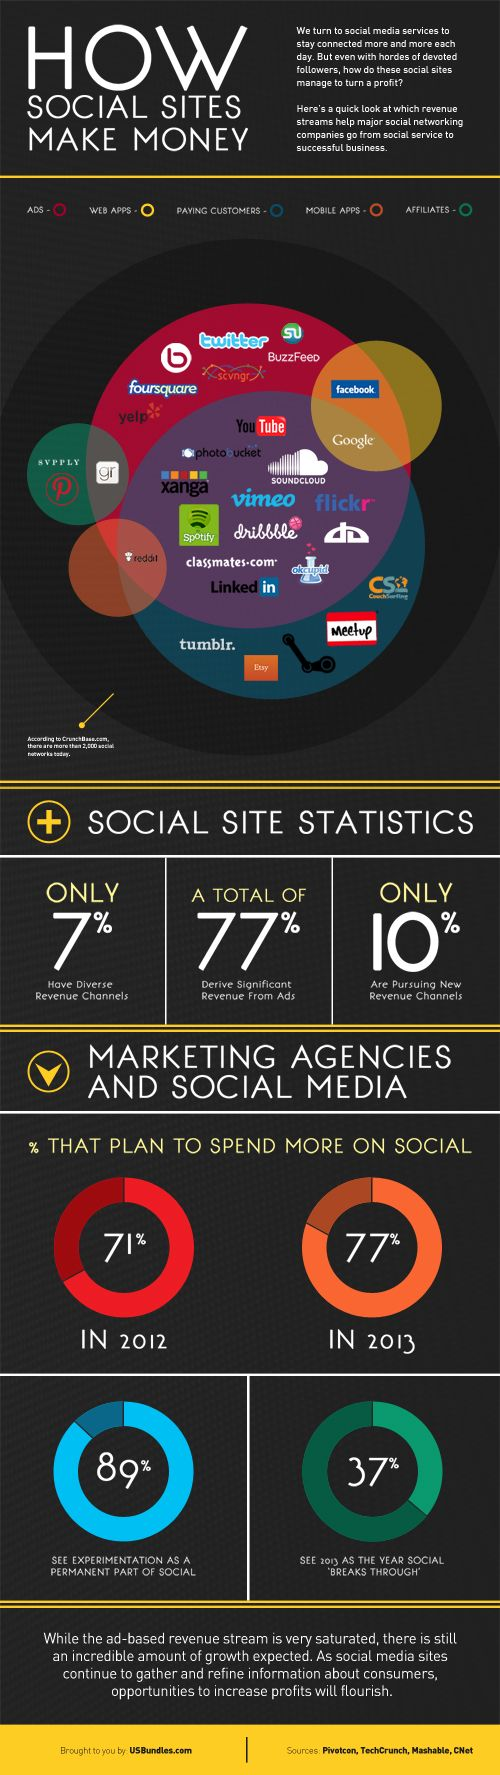 Infographic Explores How Social Sites Make Money - Esploriamo come i siti social riescono a far soldi